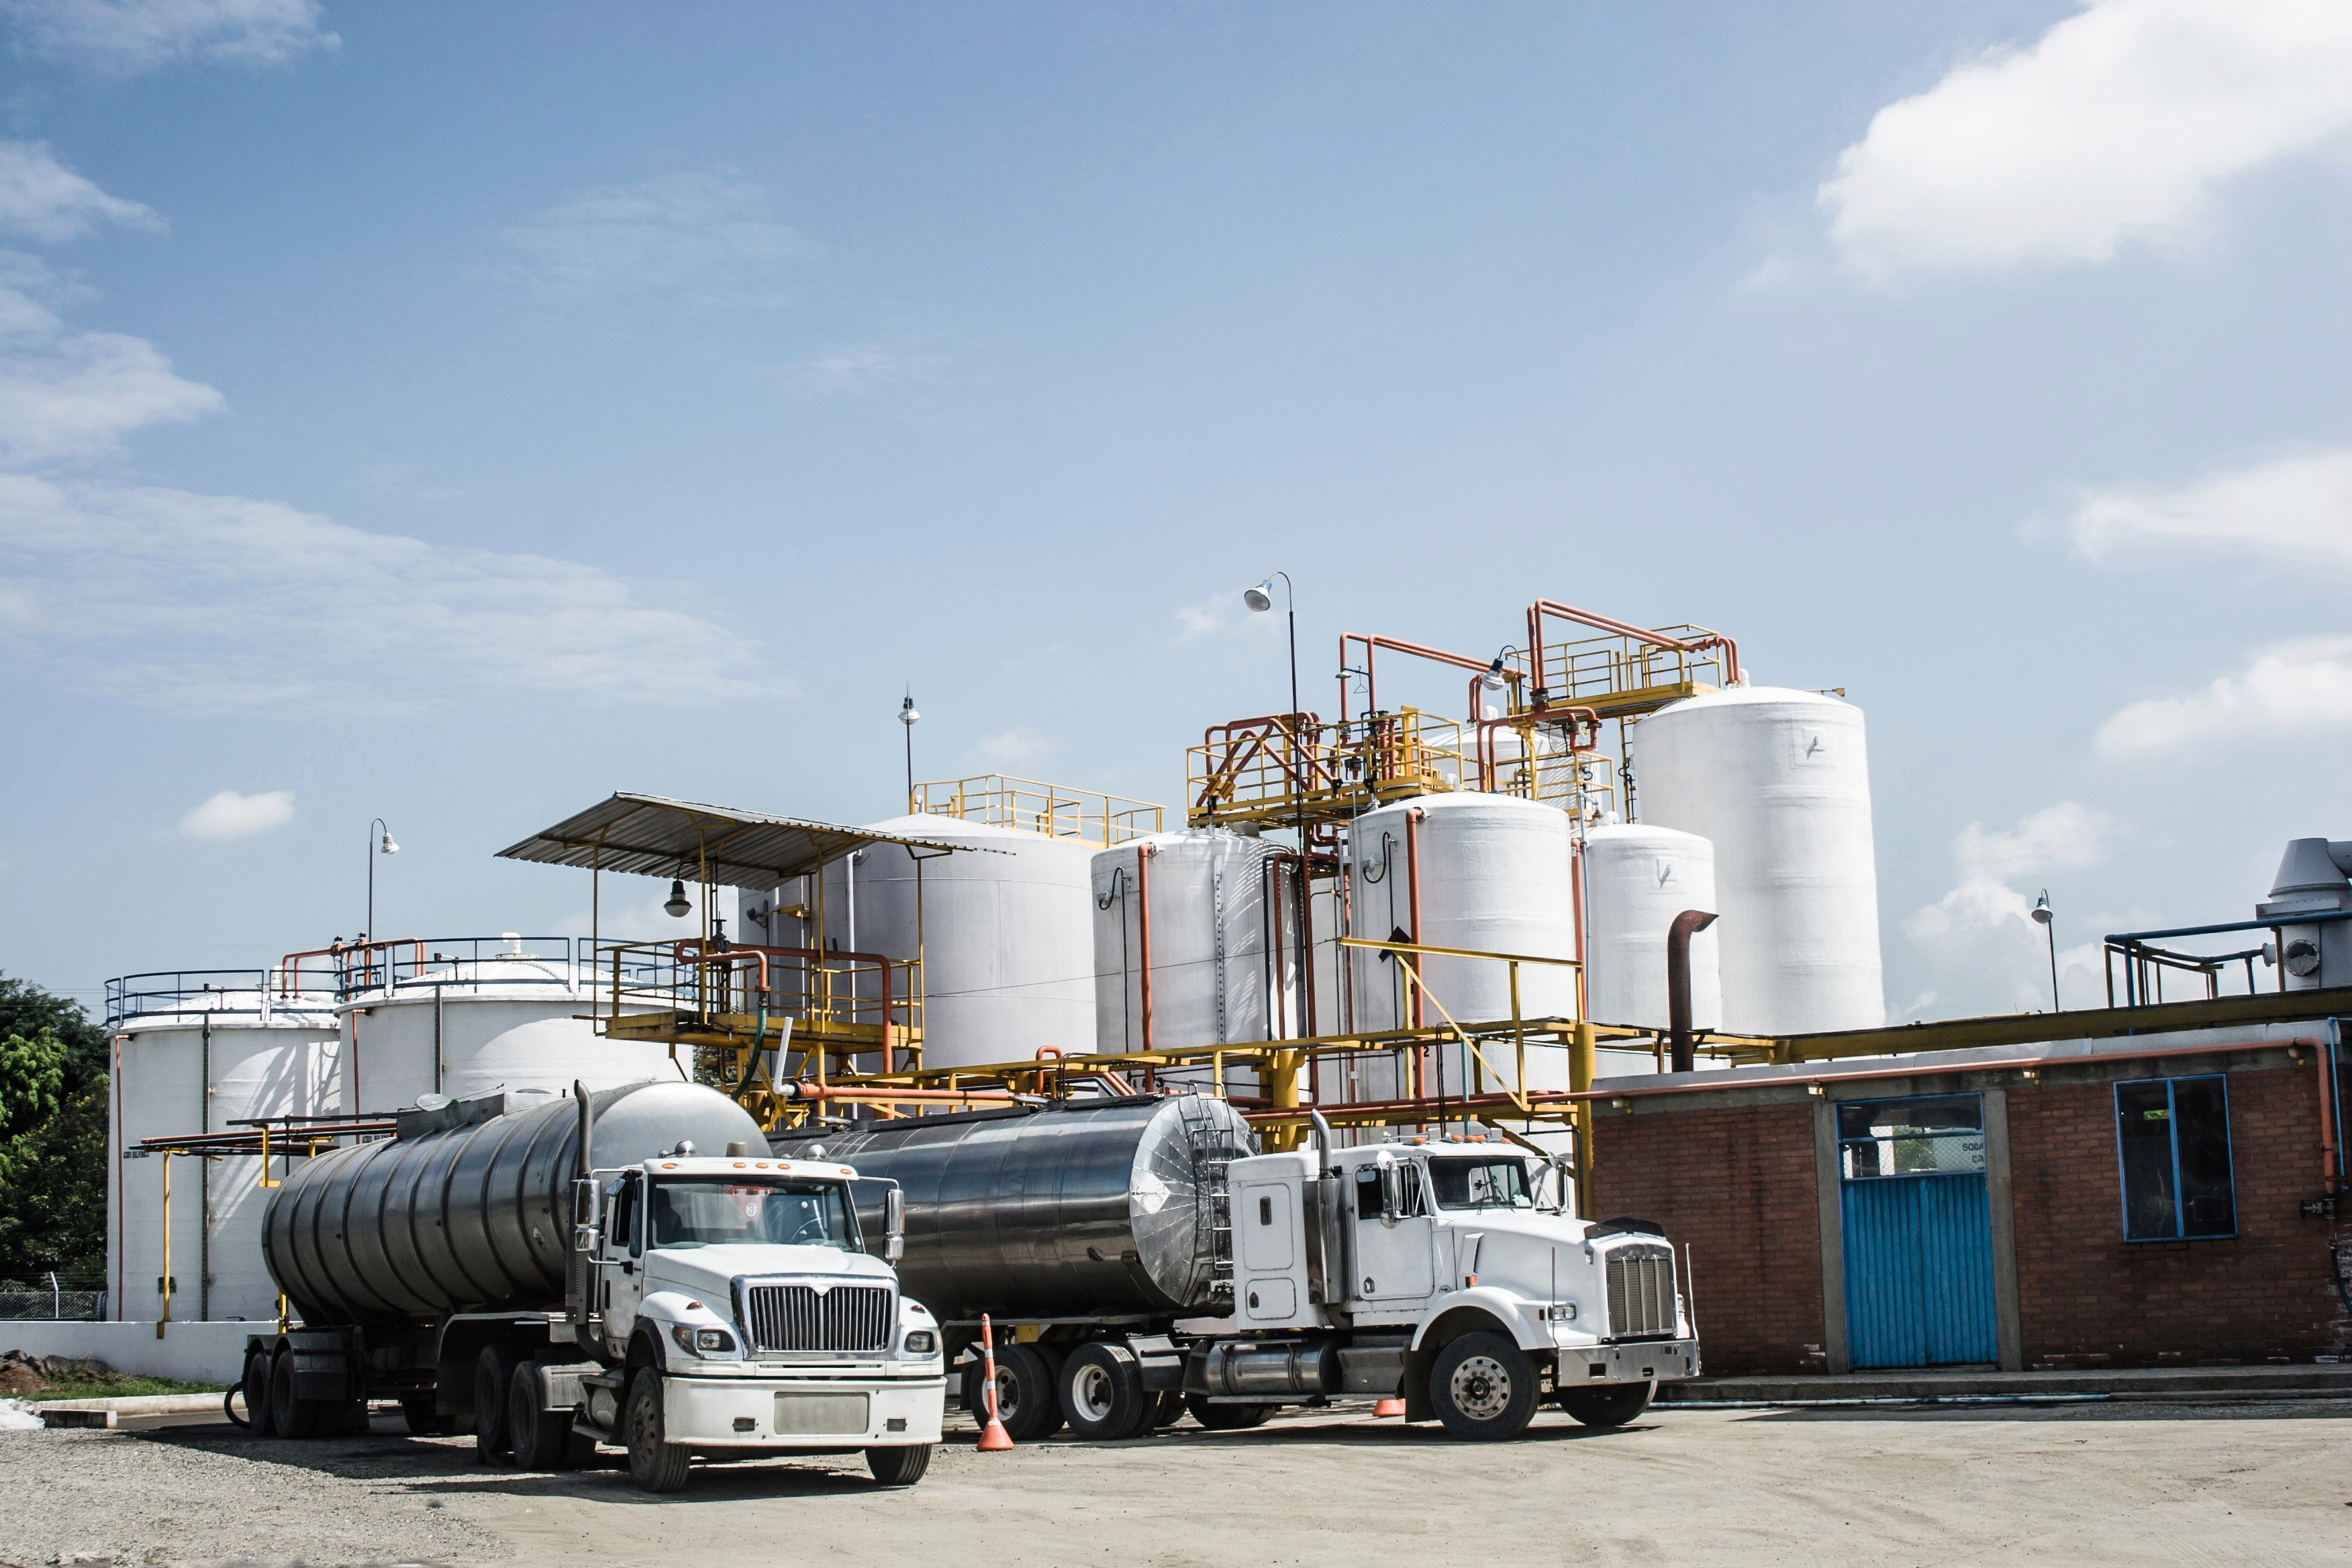 Top 3 Tank Truck Safety Hazards: Do You Know The Risks